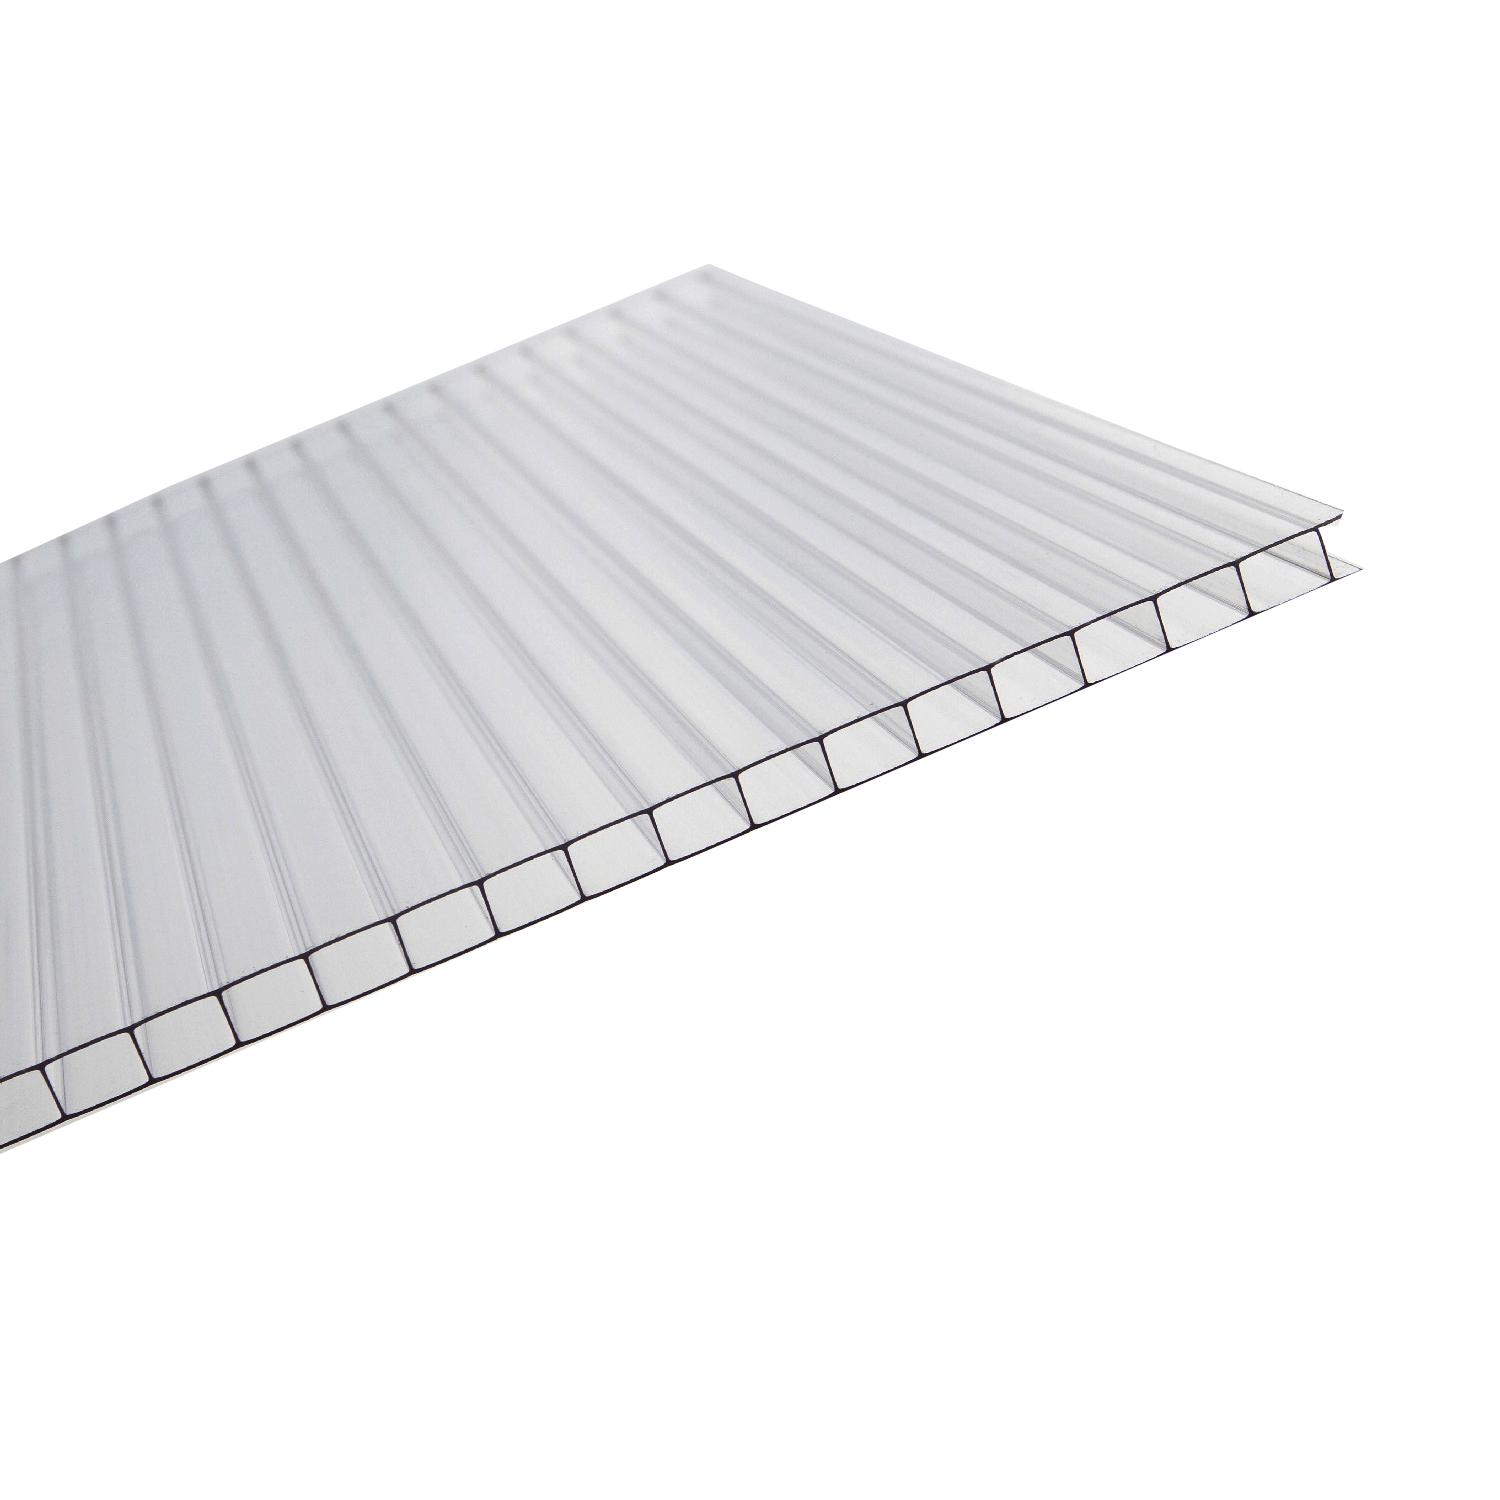 10mm Clear Polycarbonate Roofing Sheet Various Size - UV Protection